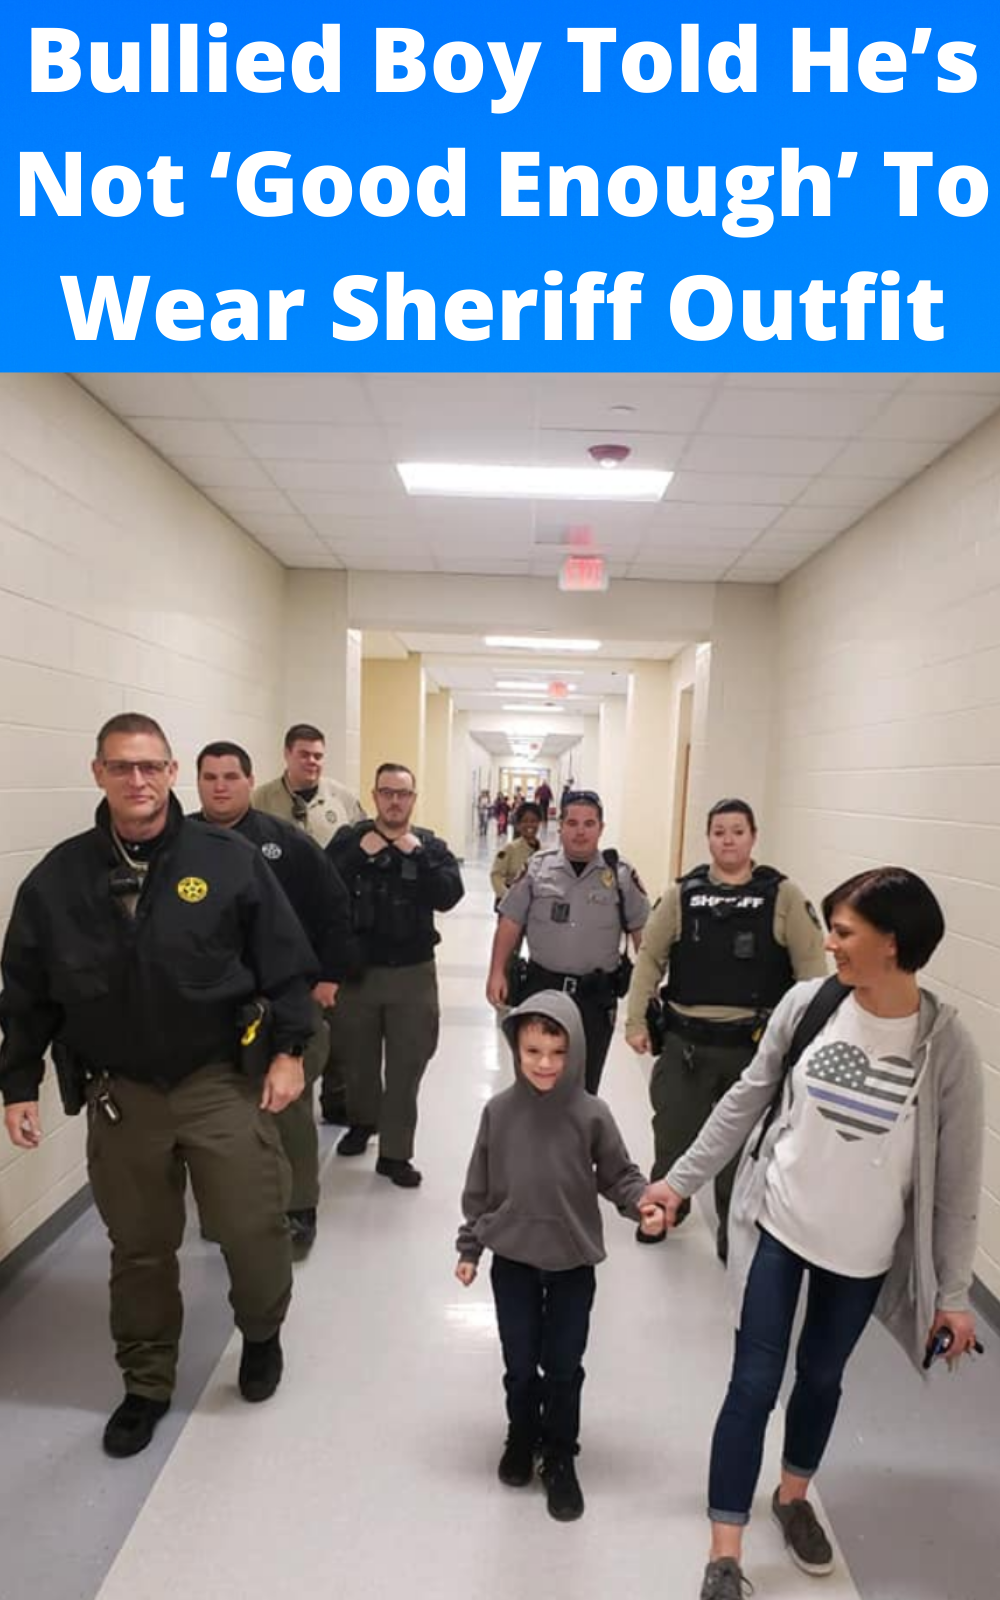 Bullied Boy Told He S Not Good Enough To Wear Sheriff Outfit To School Has 6 Officers Back Him Up In 2020 Bullying Just Amazing Kids And Parenting